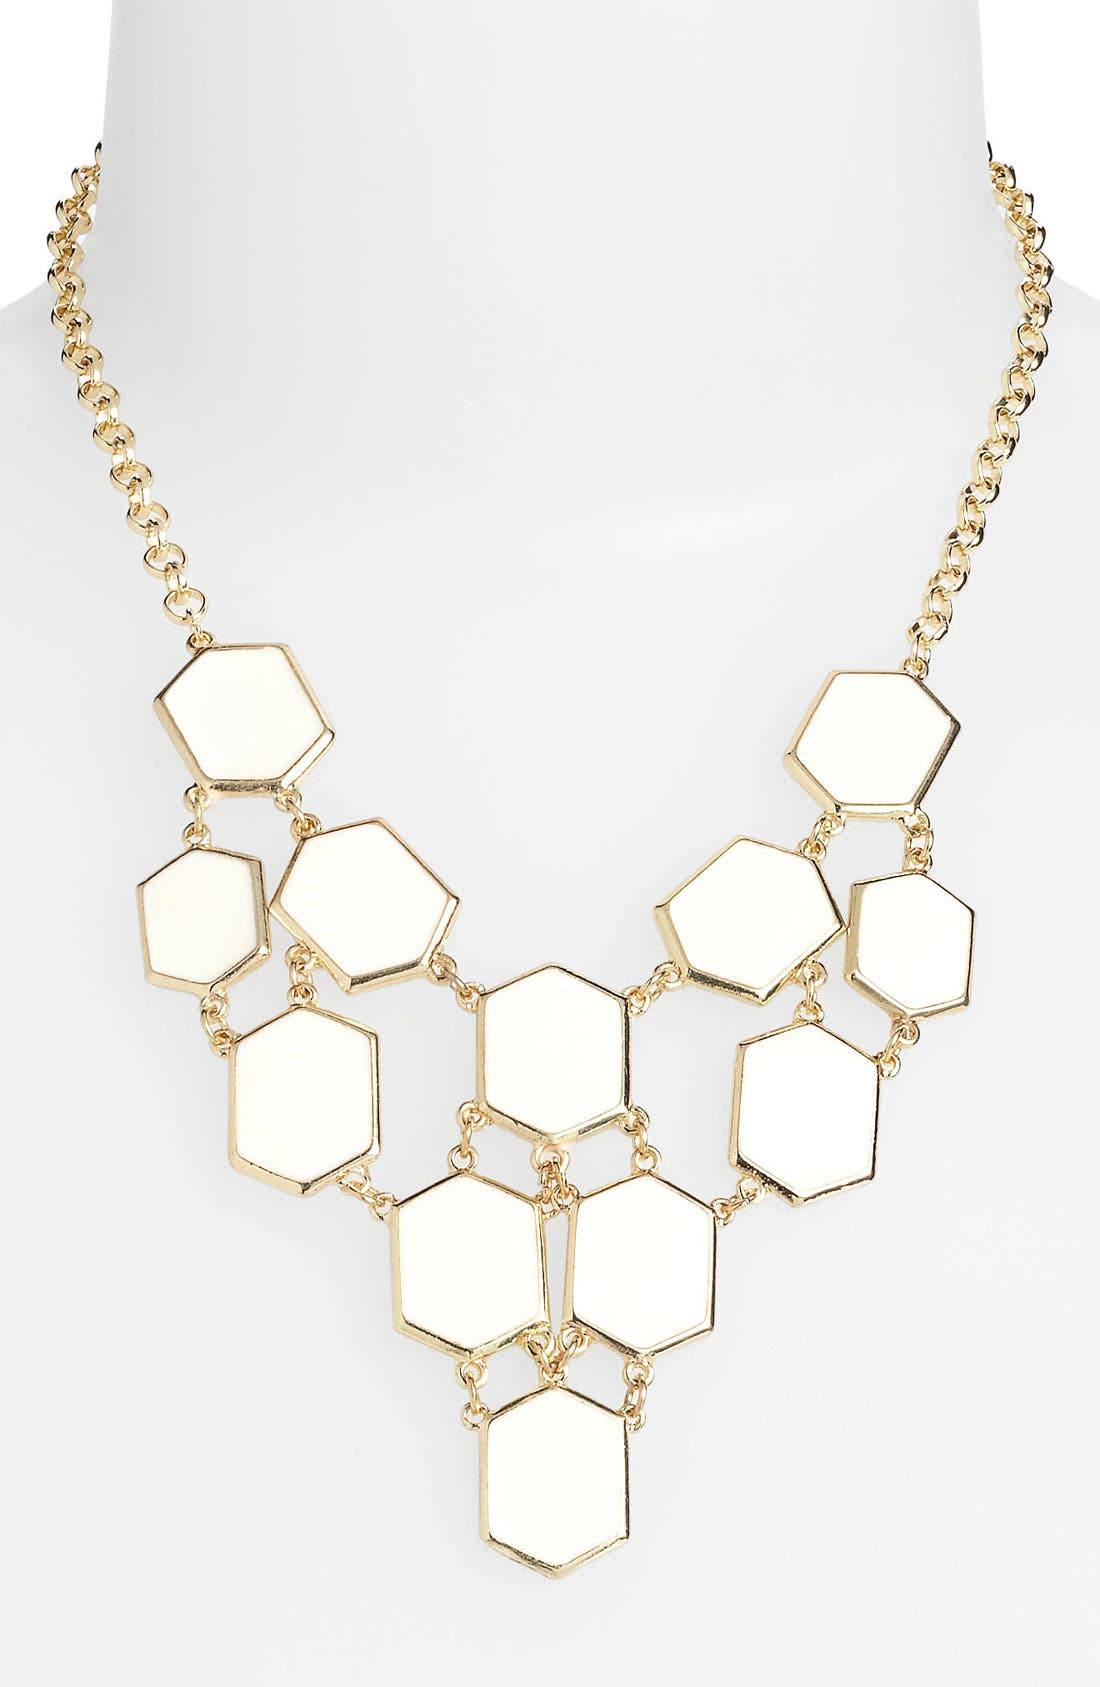 Alternate Image 1 Selected - Carole Enamel Hexagon Bib Necklace (Online Exclusive)